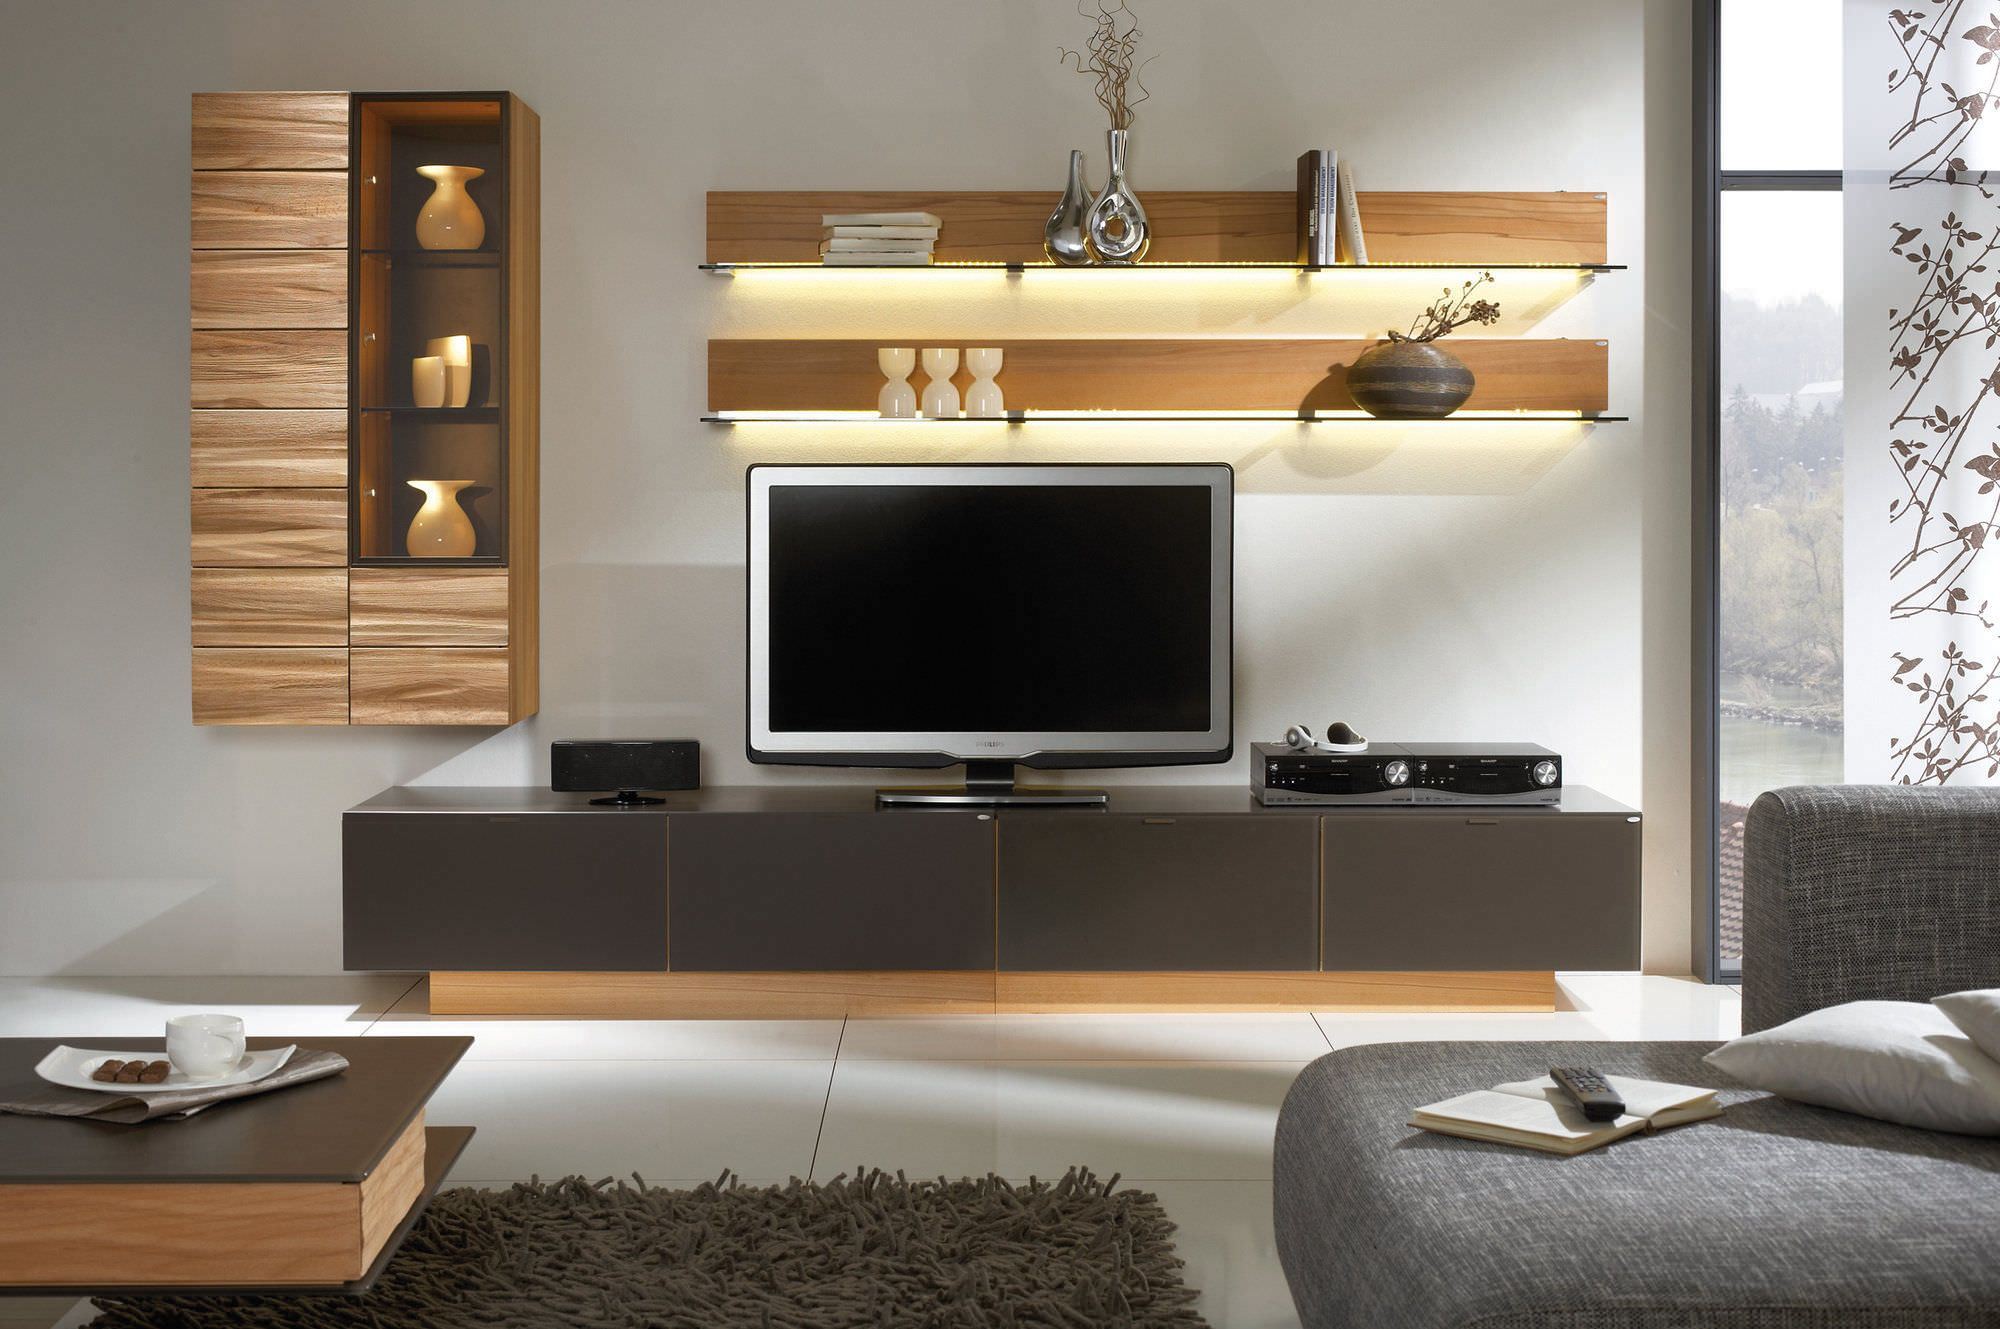 Awesome white brown wood glass cool design contemporary tv for Table tv design